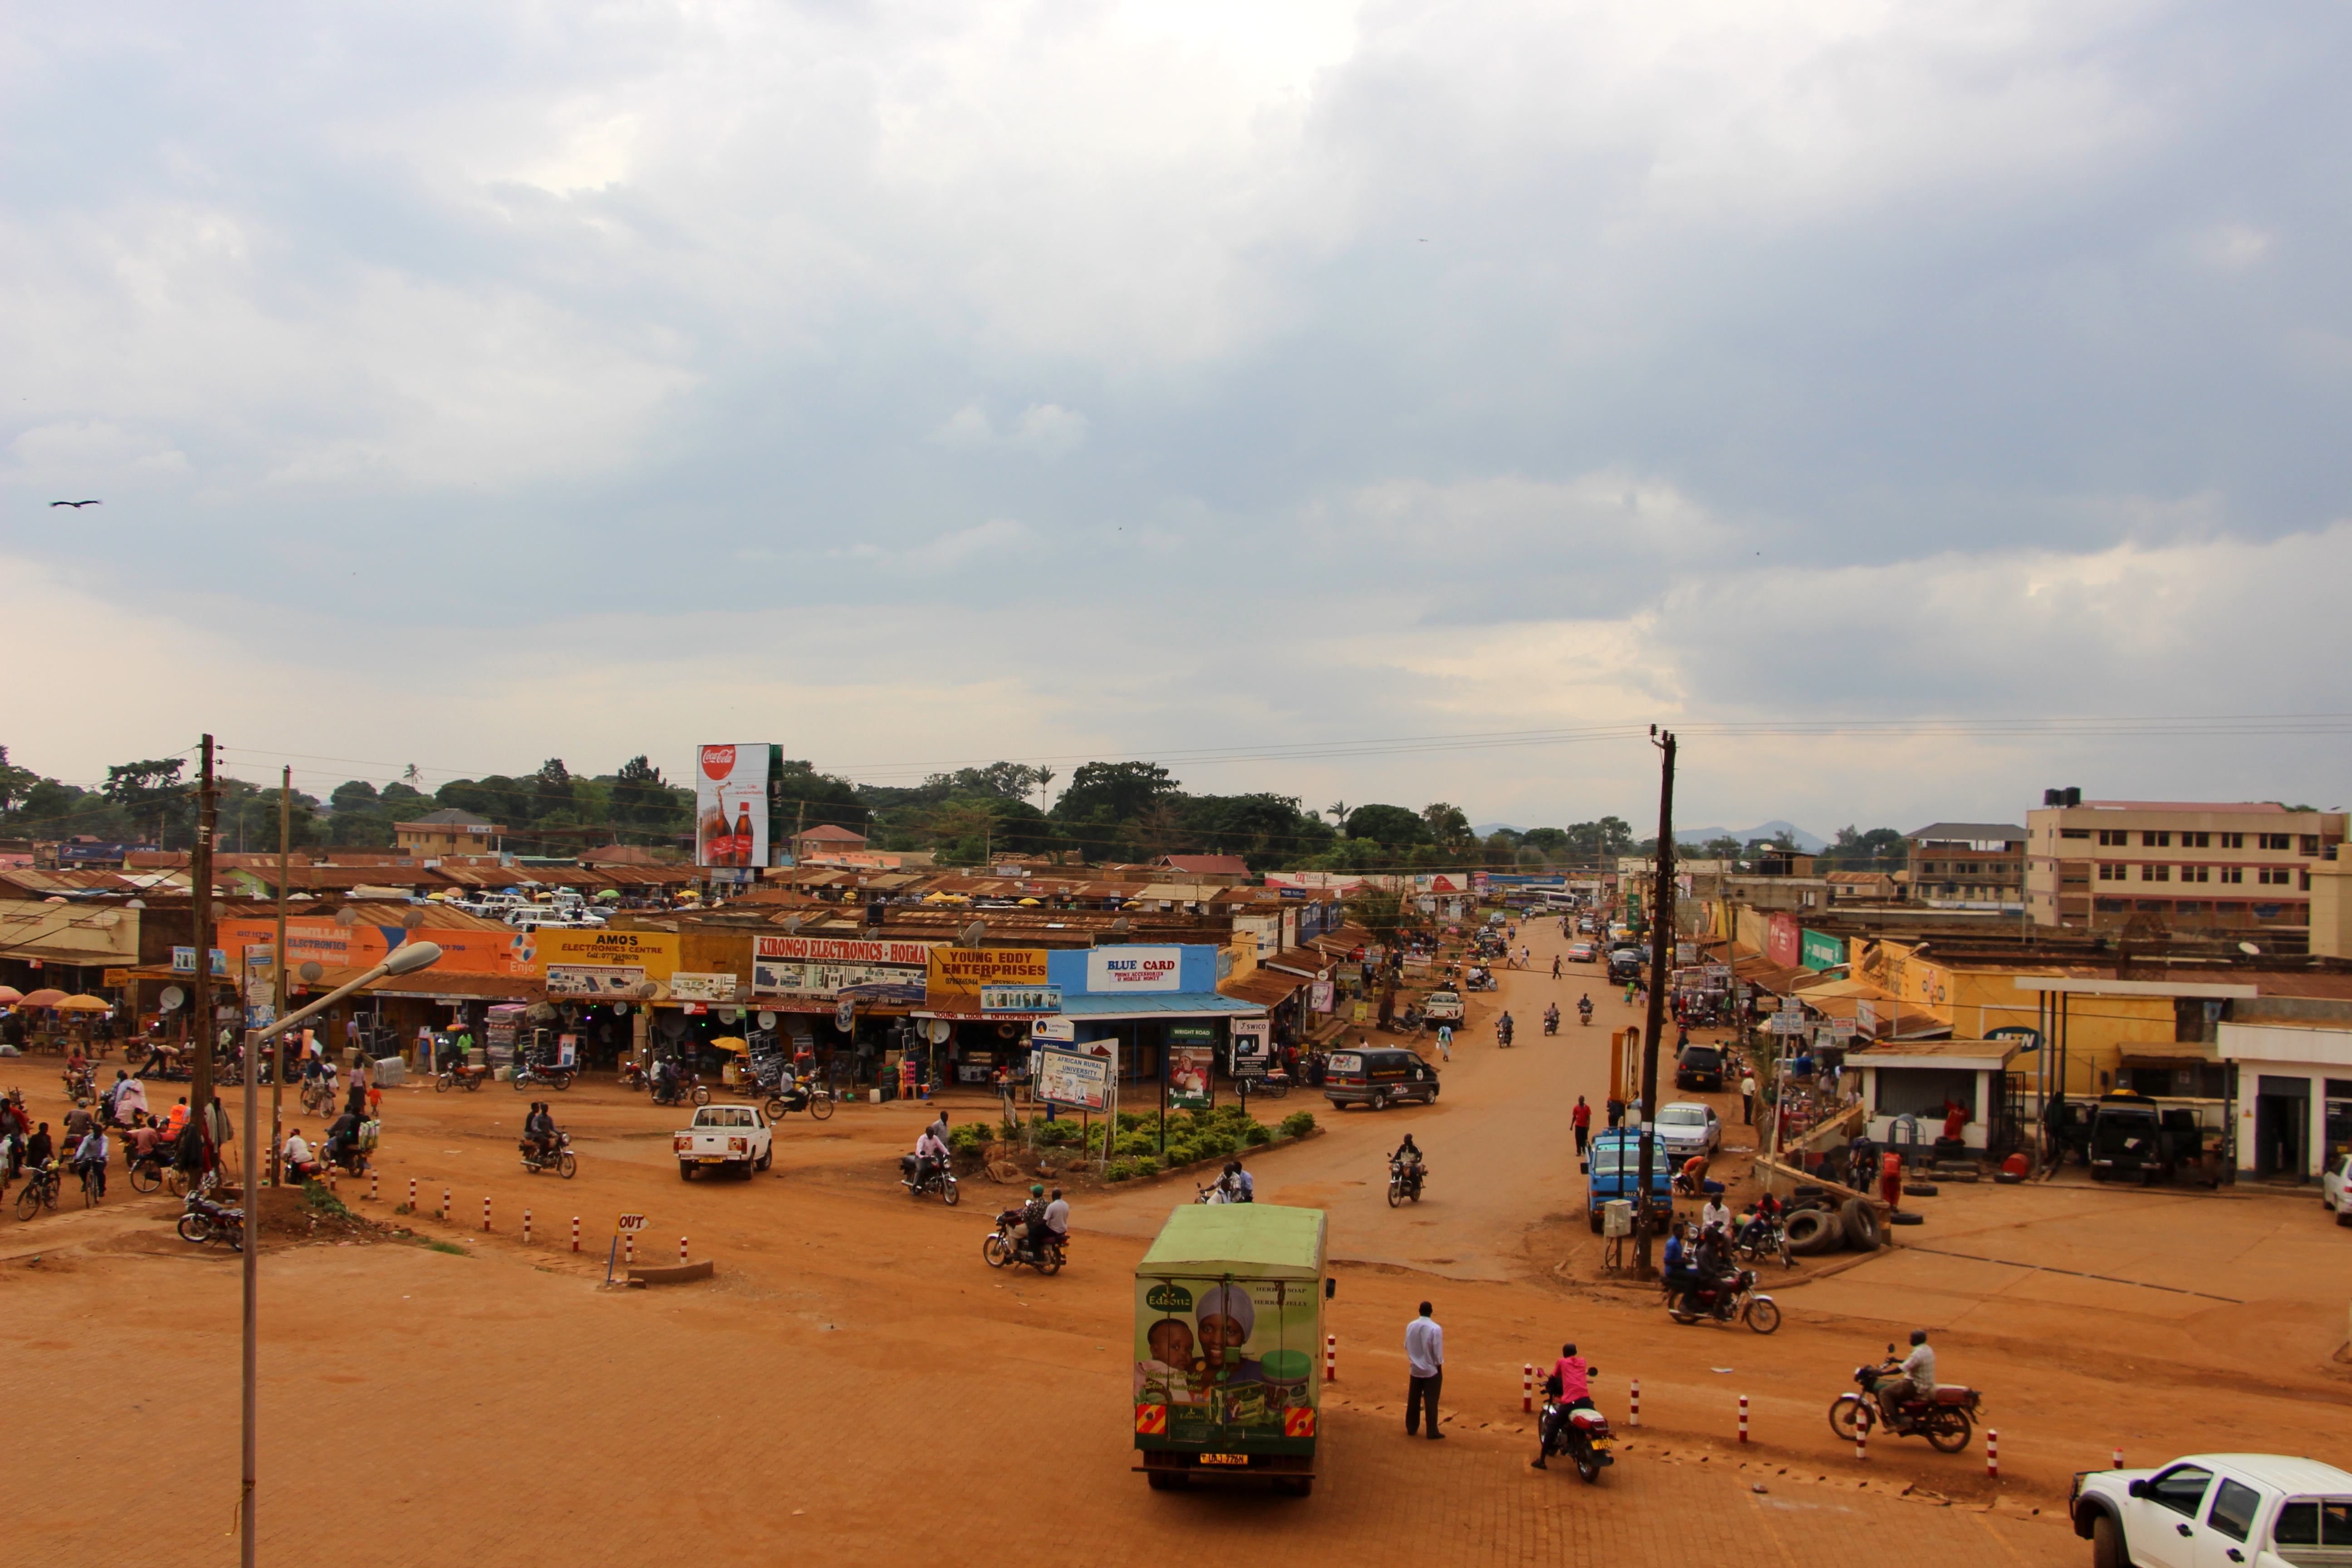 The bustling streets of Hoima Town.